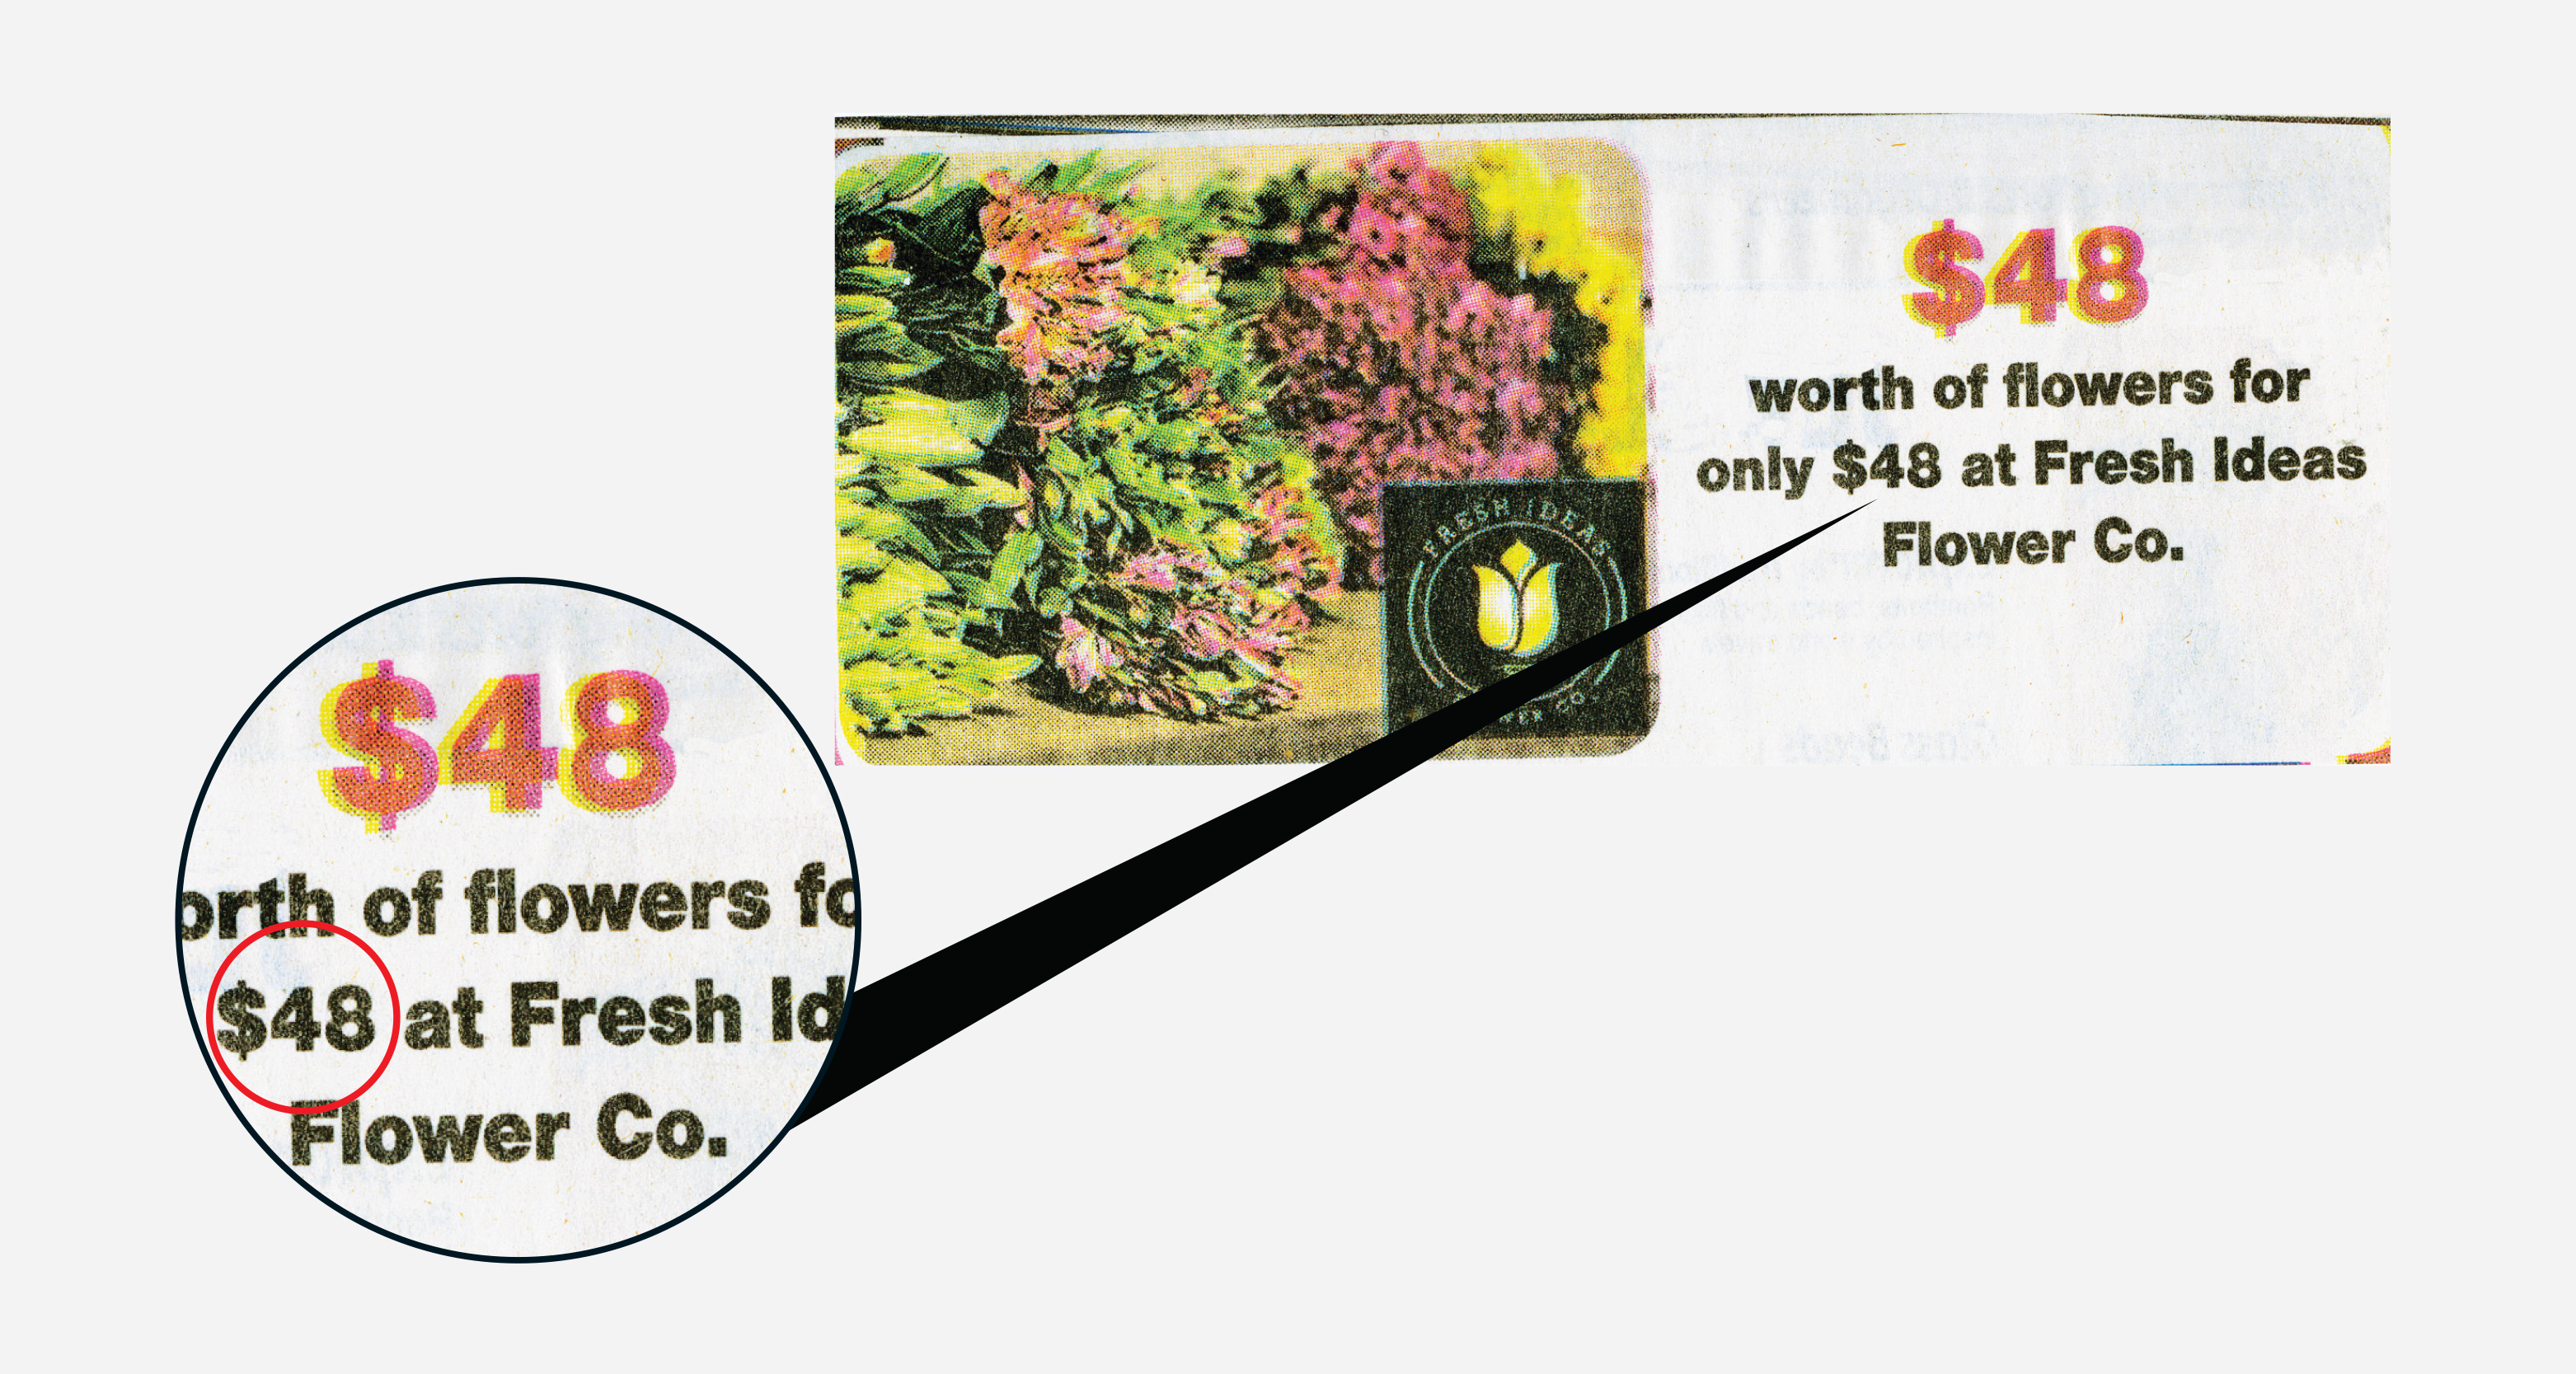 A photo of a florist's advertisement that offers 48 dollars of floral arrangements for 48 dollars.